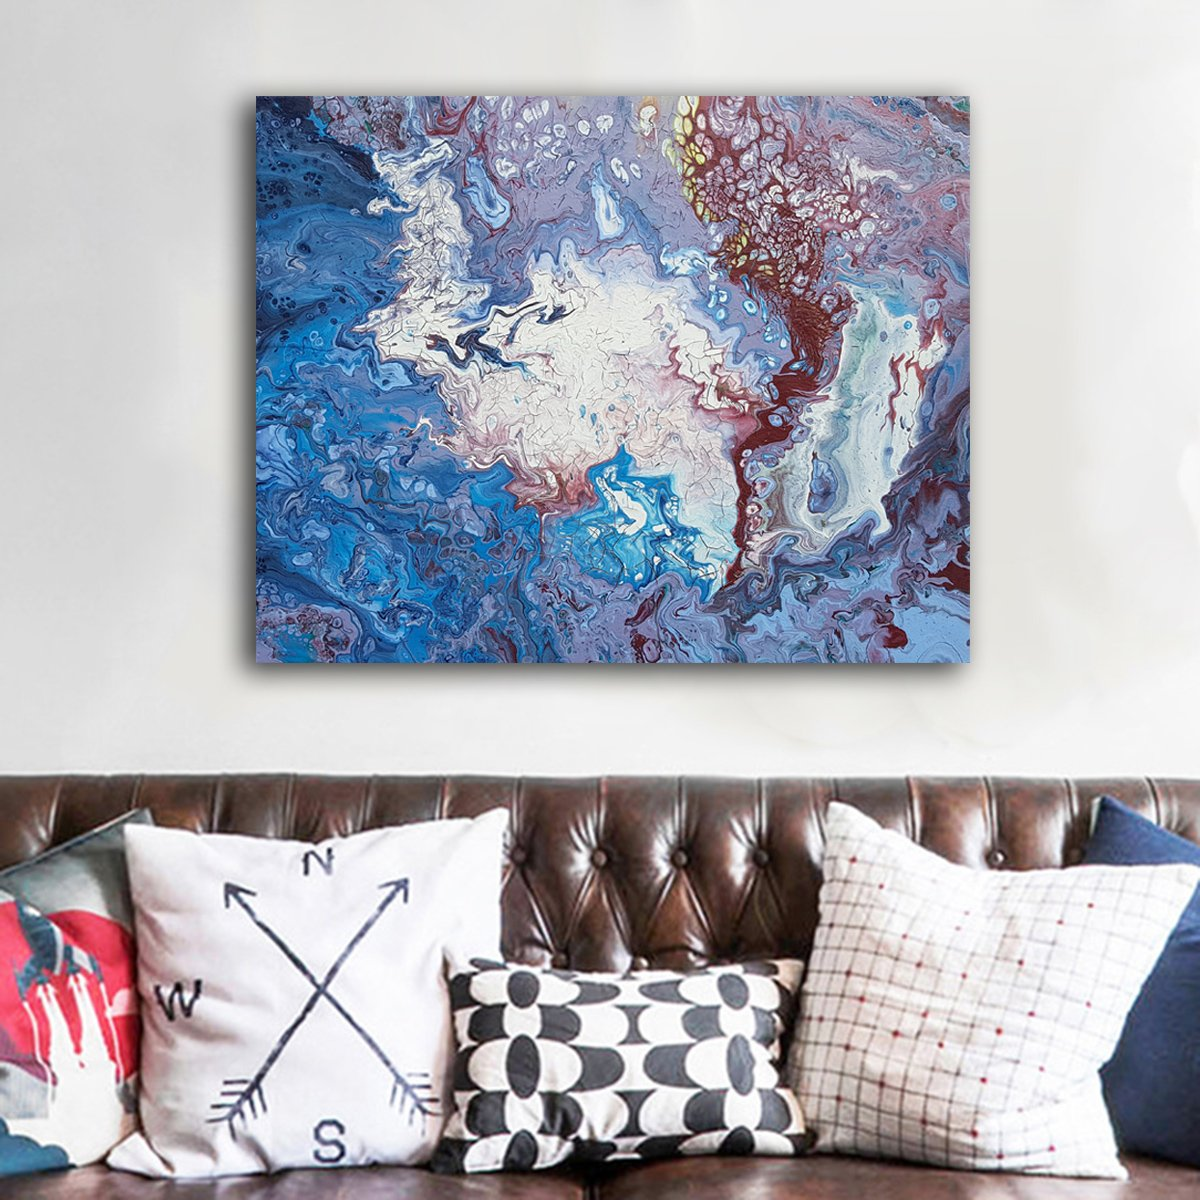 Netune's Nemesis Original Large Abstract Expressionism Paintings Buy Artwork Toronto Art Gallery Canadian Artist Blue Painting